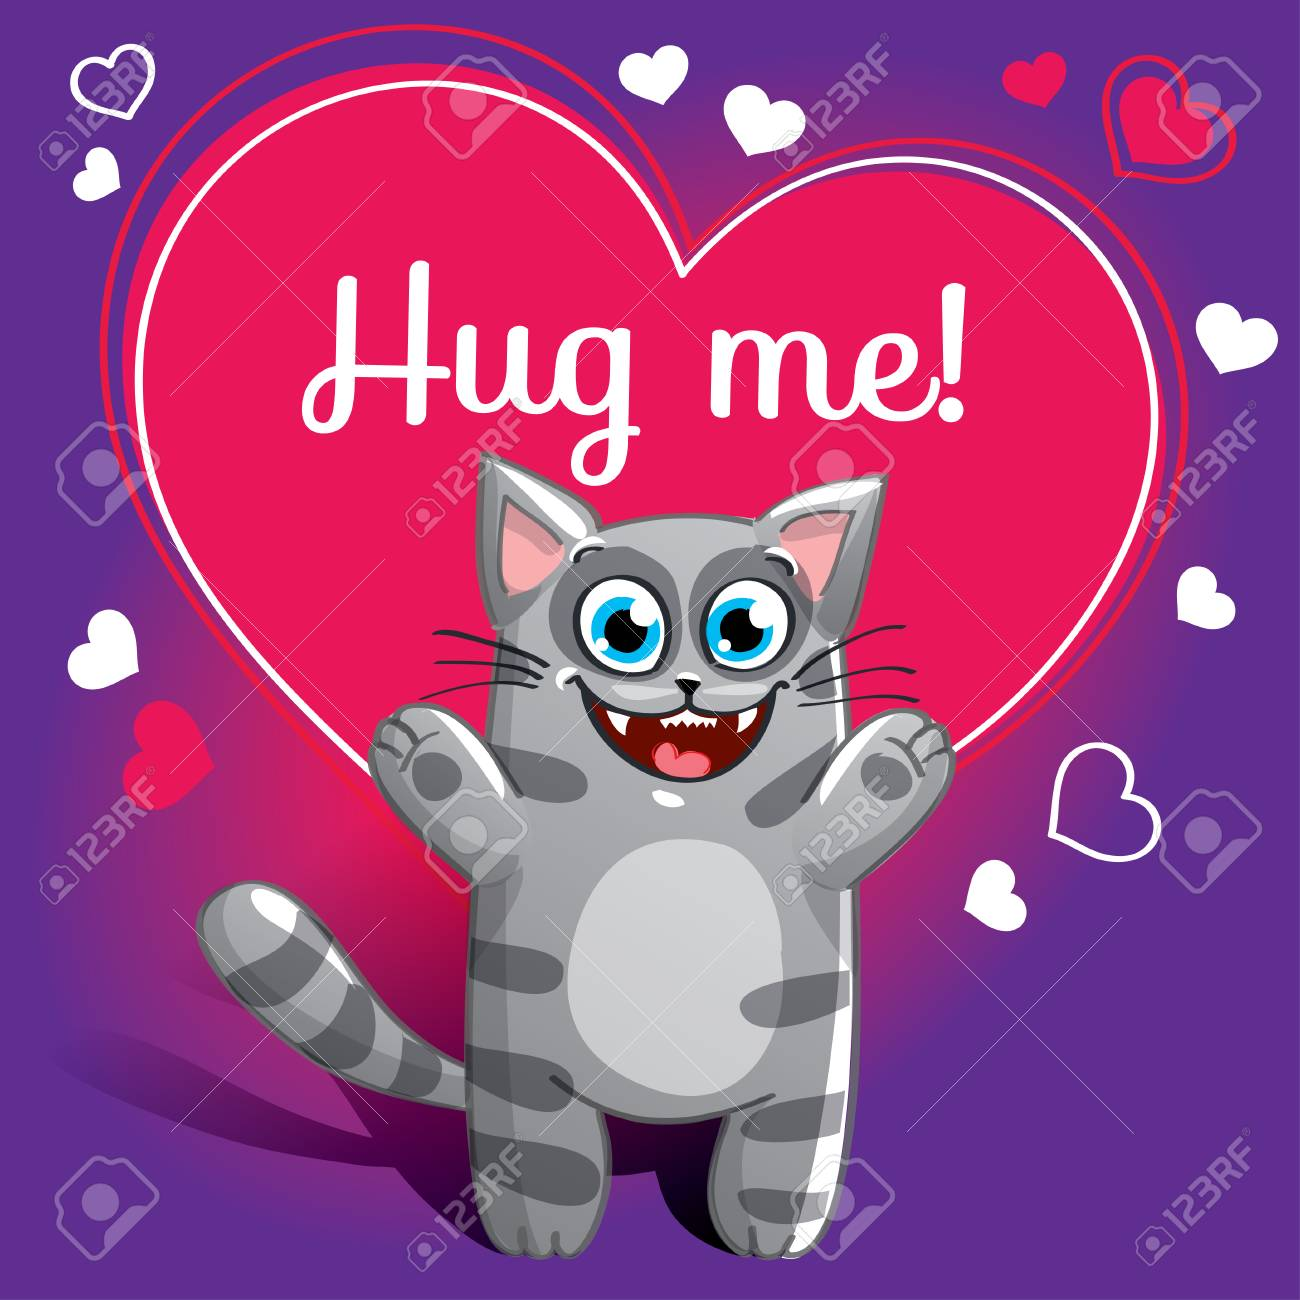 Cartoon cat ready for a hugging - 89472874